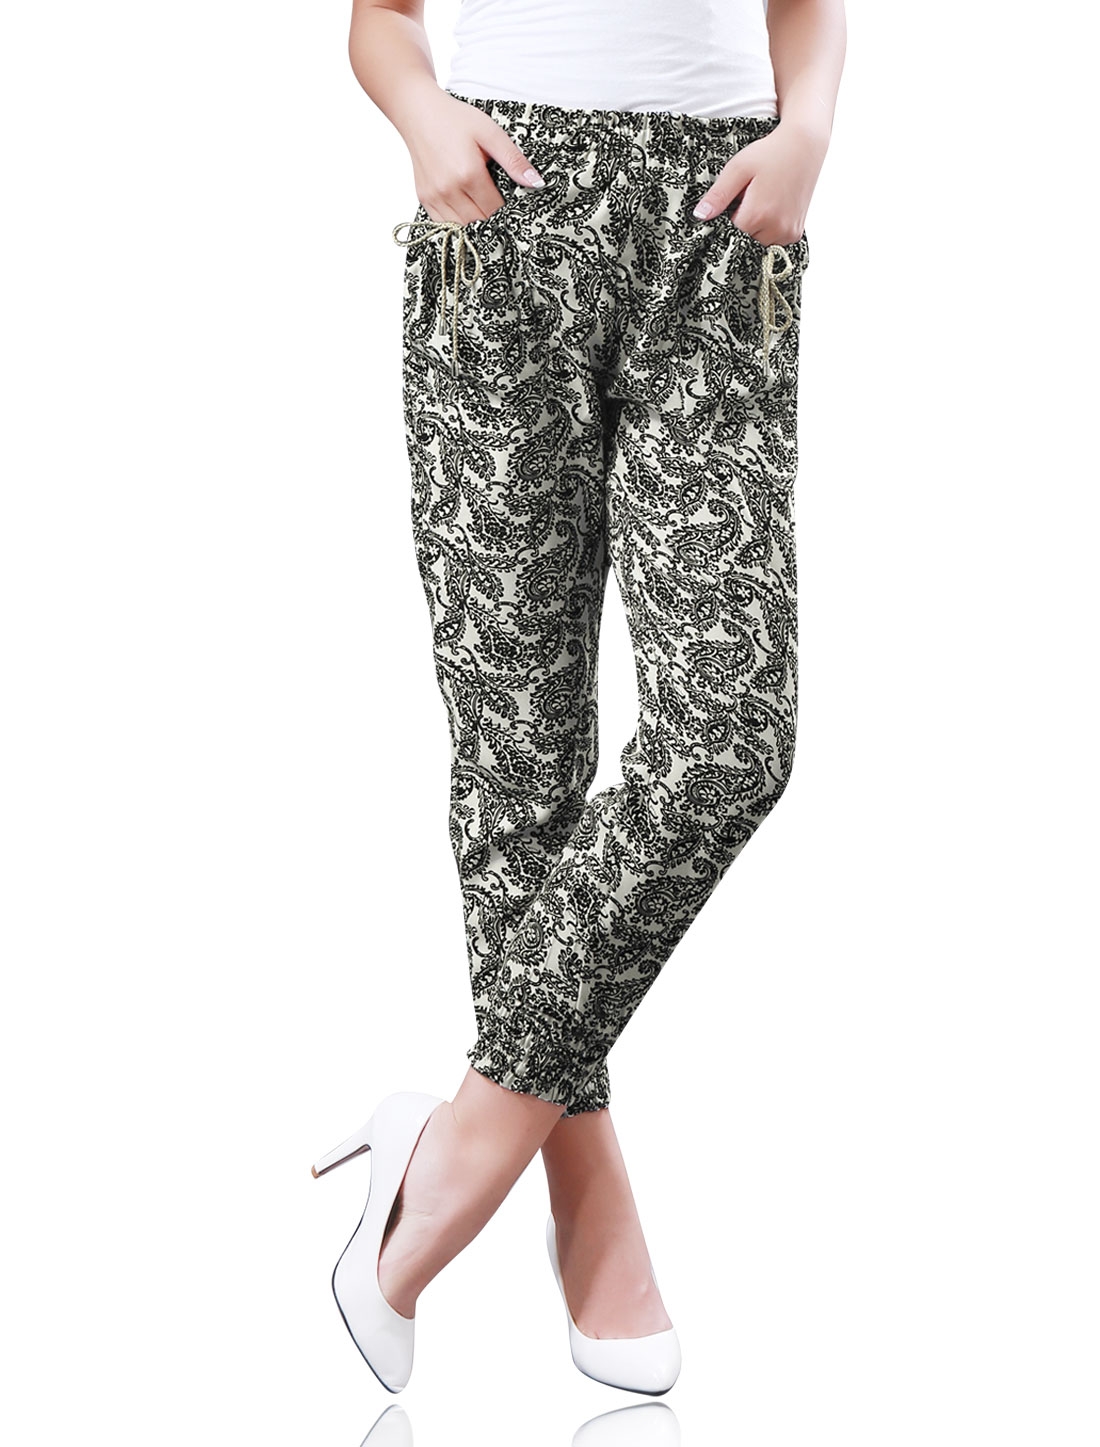 Allover Floral Paisleys Print Elastic Waist Jogger Pants for Woman Black Beige XS